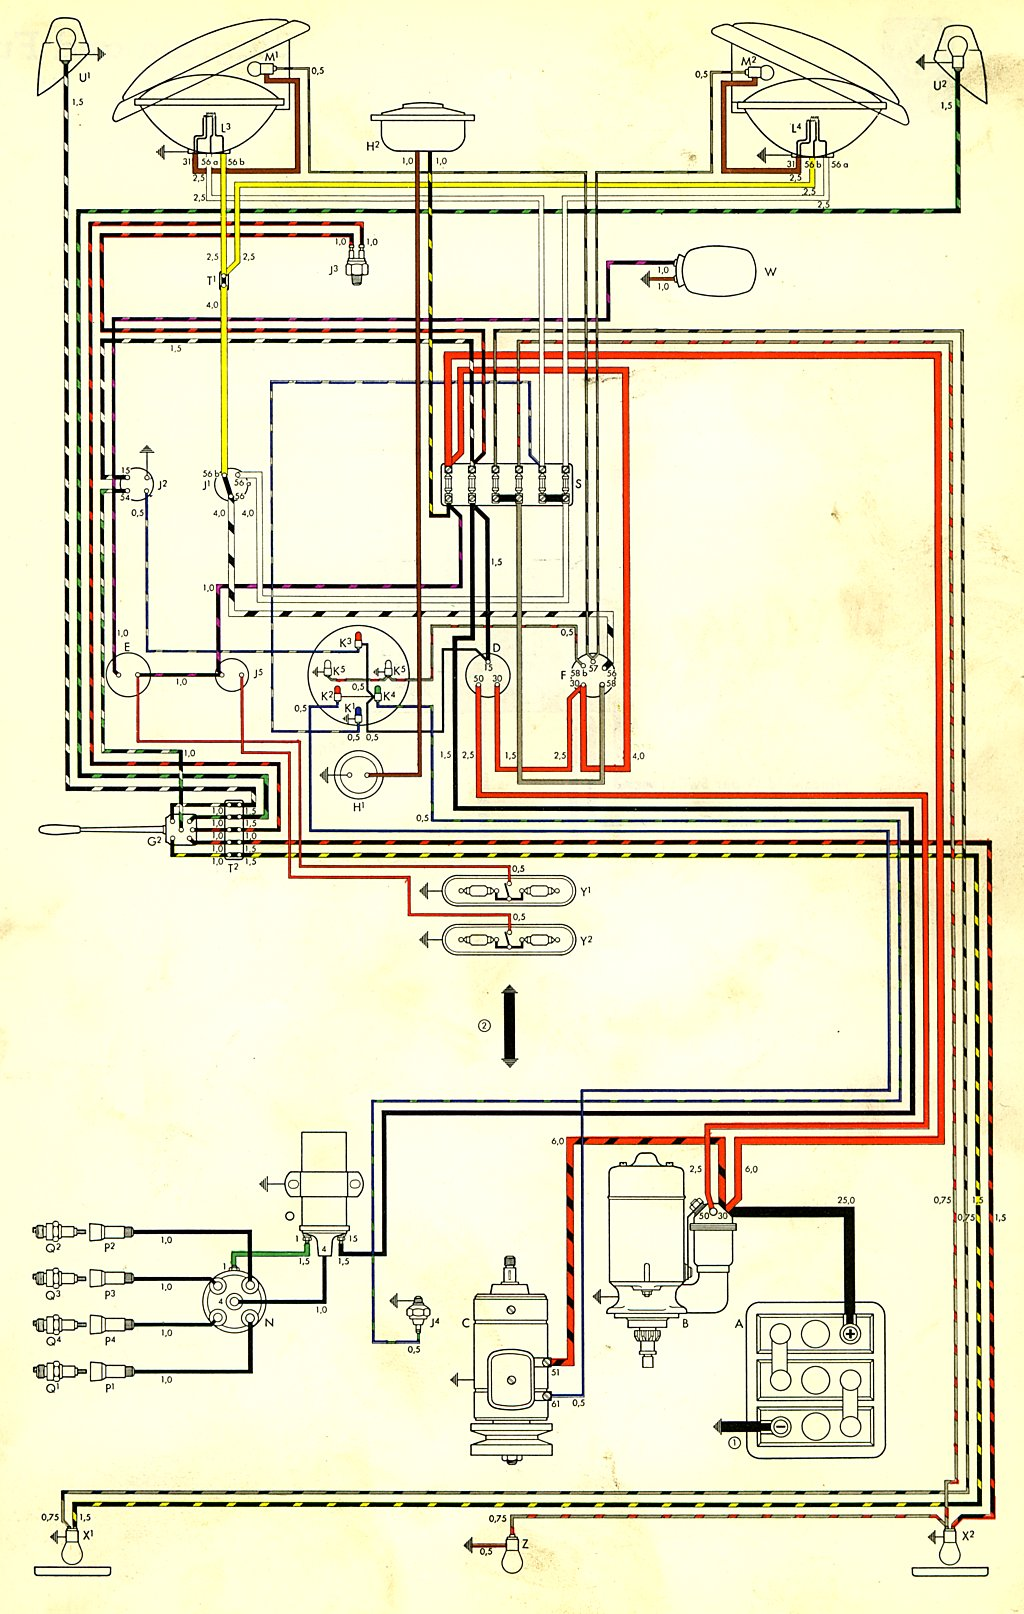 thesamba com type 2 wiring diagrams rh thesamba com Wiring Schematics for Cars Guitar Wiring Schematics